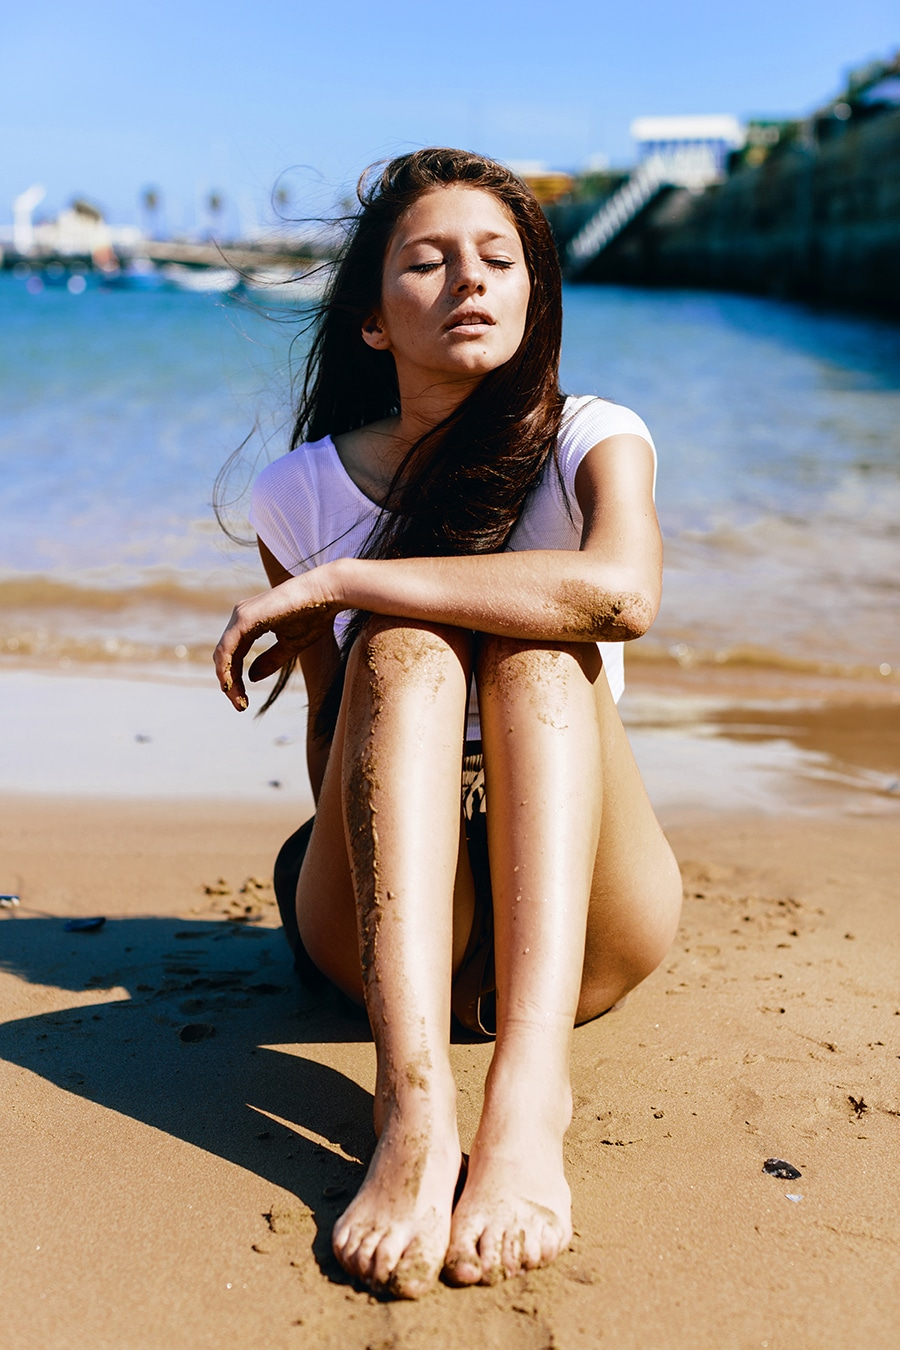 Photo of a model sitting at the beach